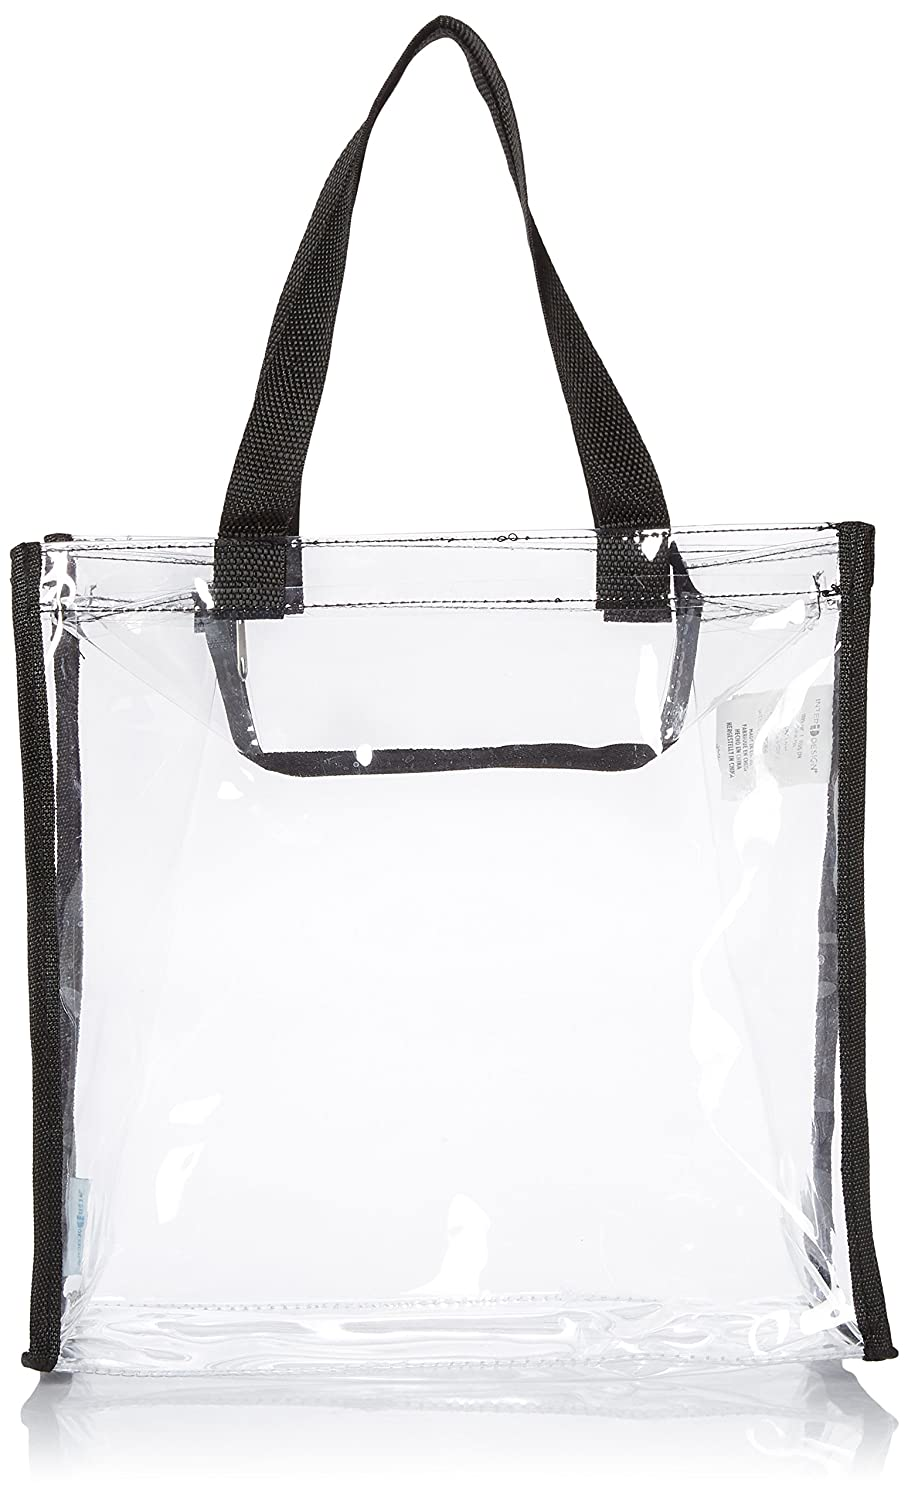 mDesign Travel Bag and Accessories Bag - Bag for Beach, Care Products or Cosmetics - Carrying Case Transparent / Black MetroDecor FBA_4163MDBST